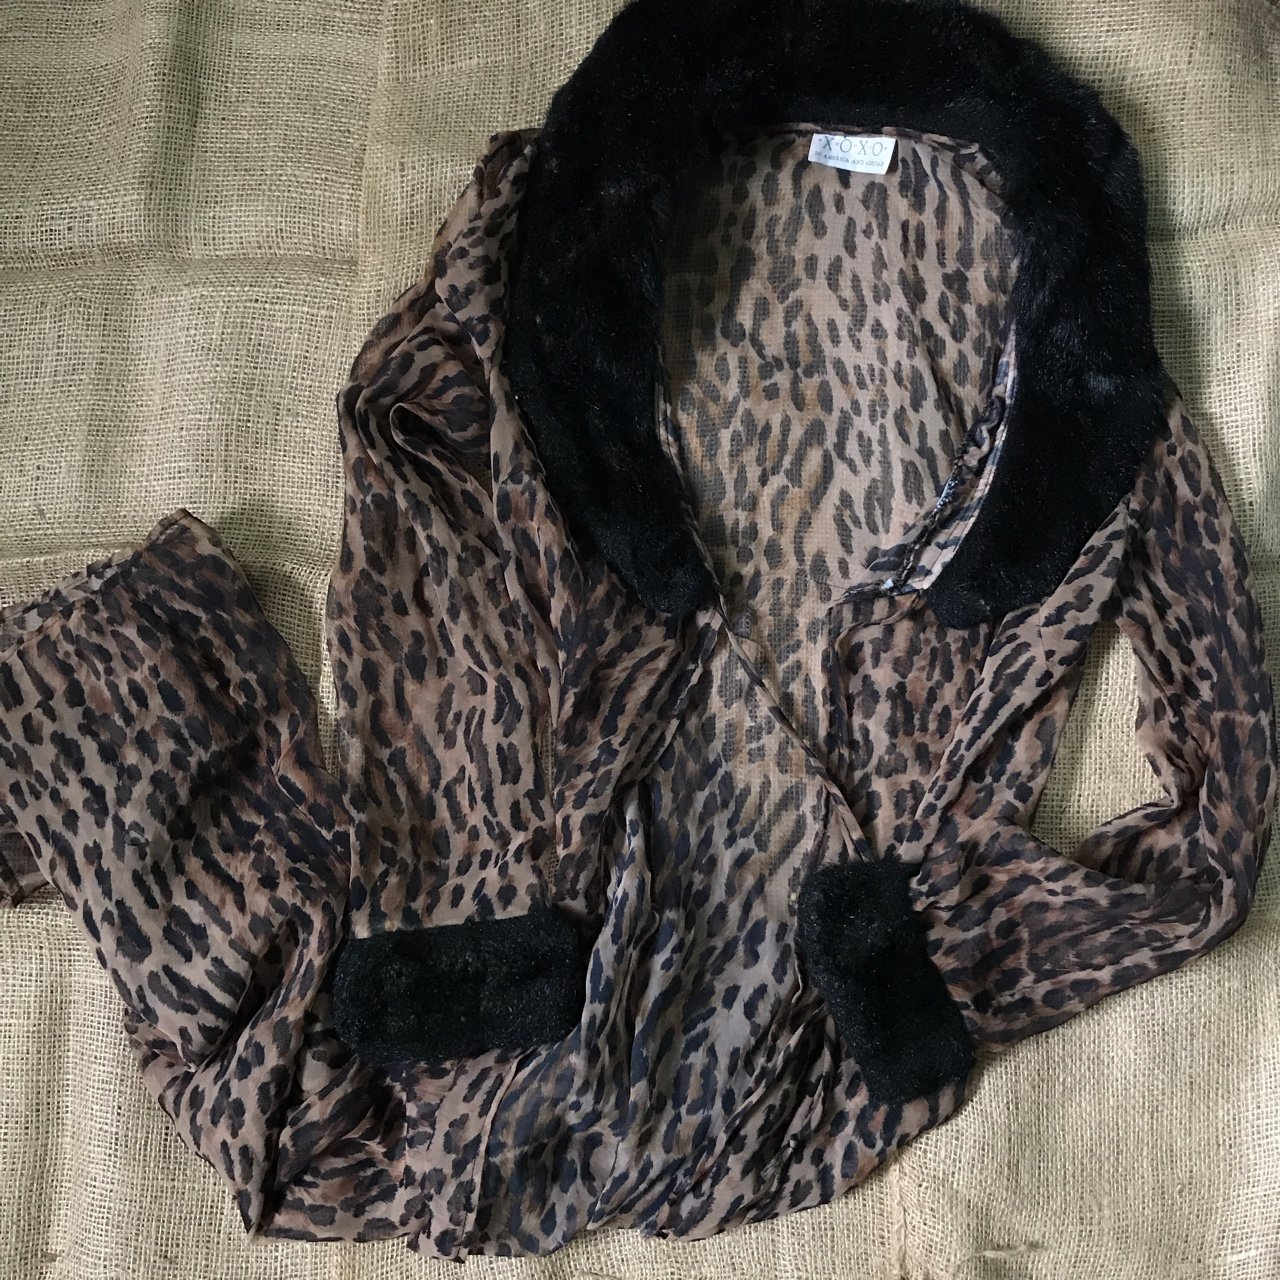 1962ba1913 Wow!! Vintage cheetah robe with faux fur trimming 😩 if I to - Depop